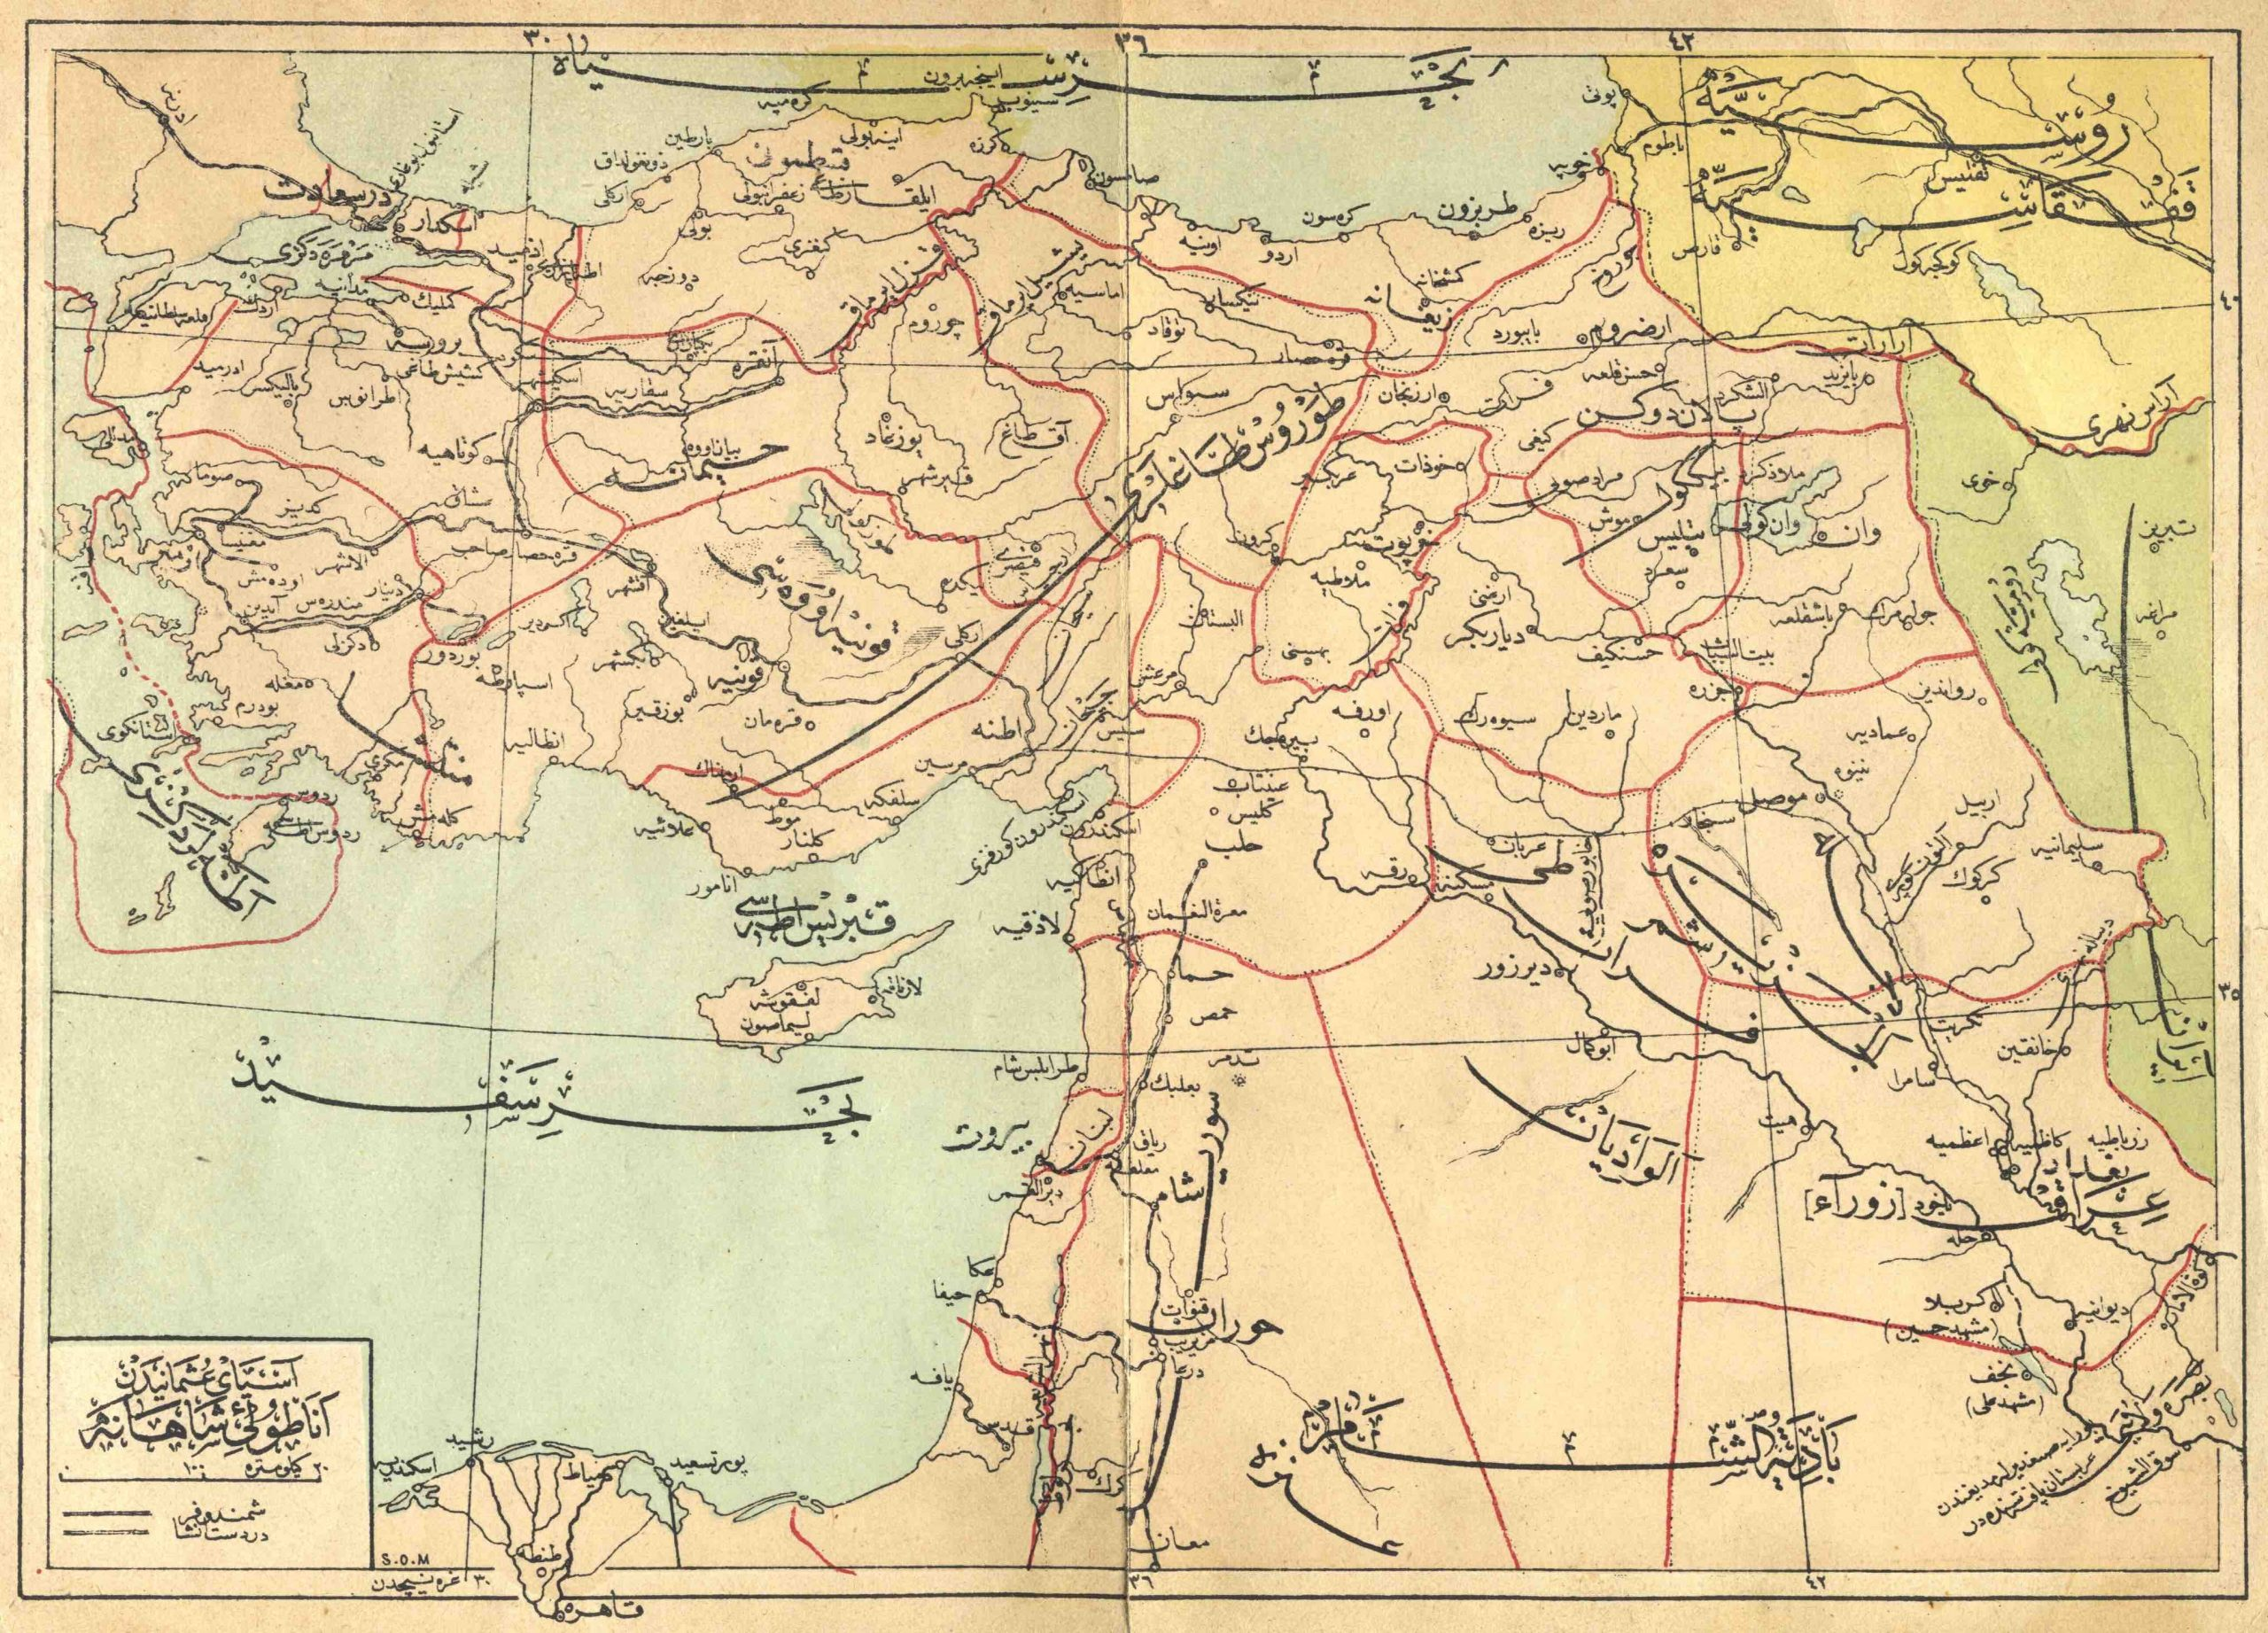 Twentieth century map of the Middle East with labels in Ottoman Turkish.